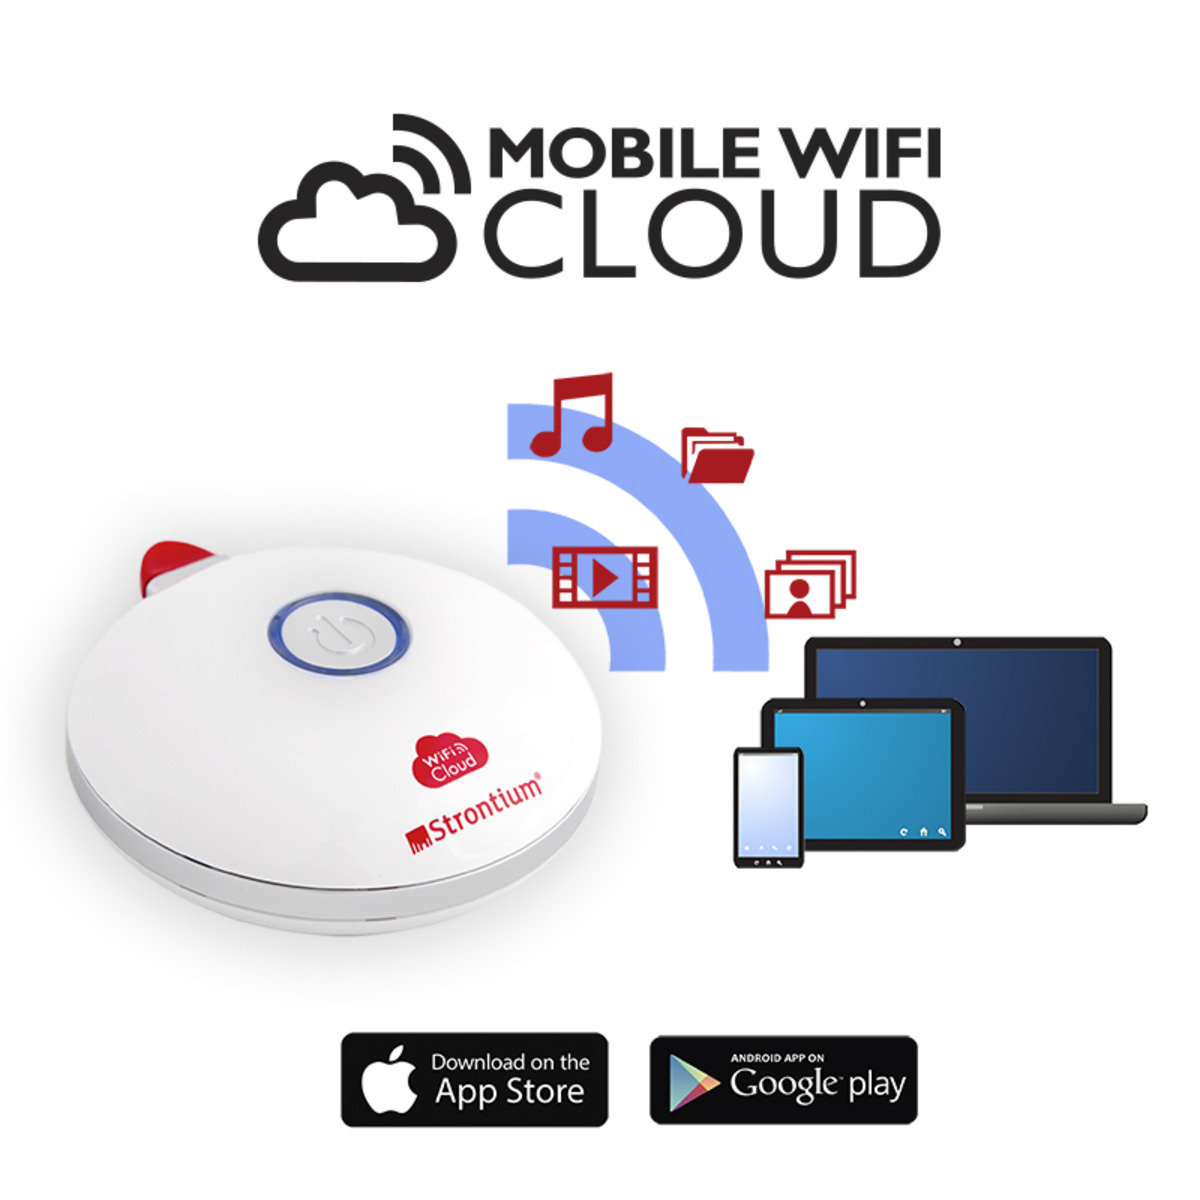 Mobile Wifi Cloud